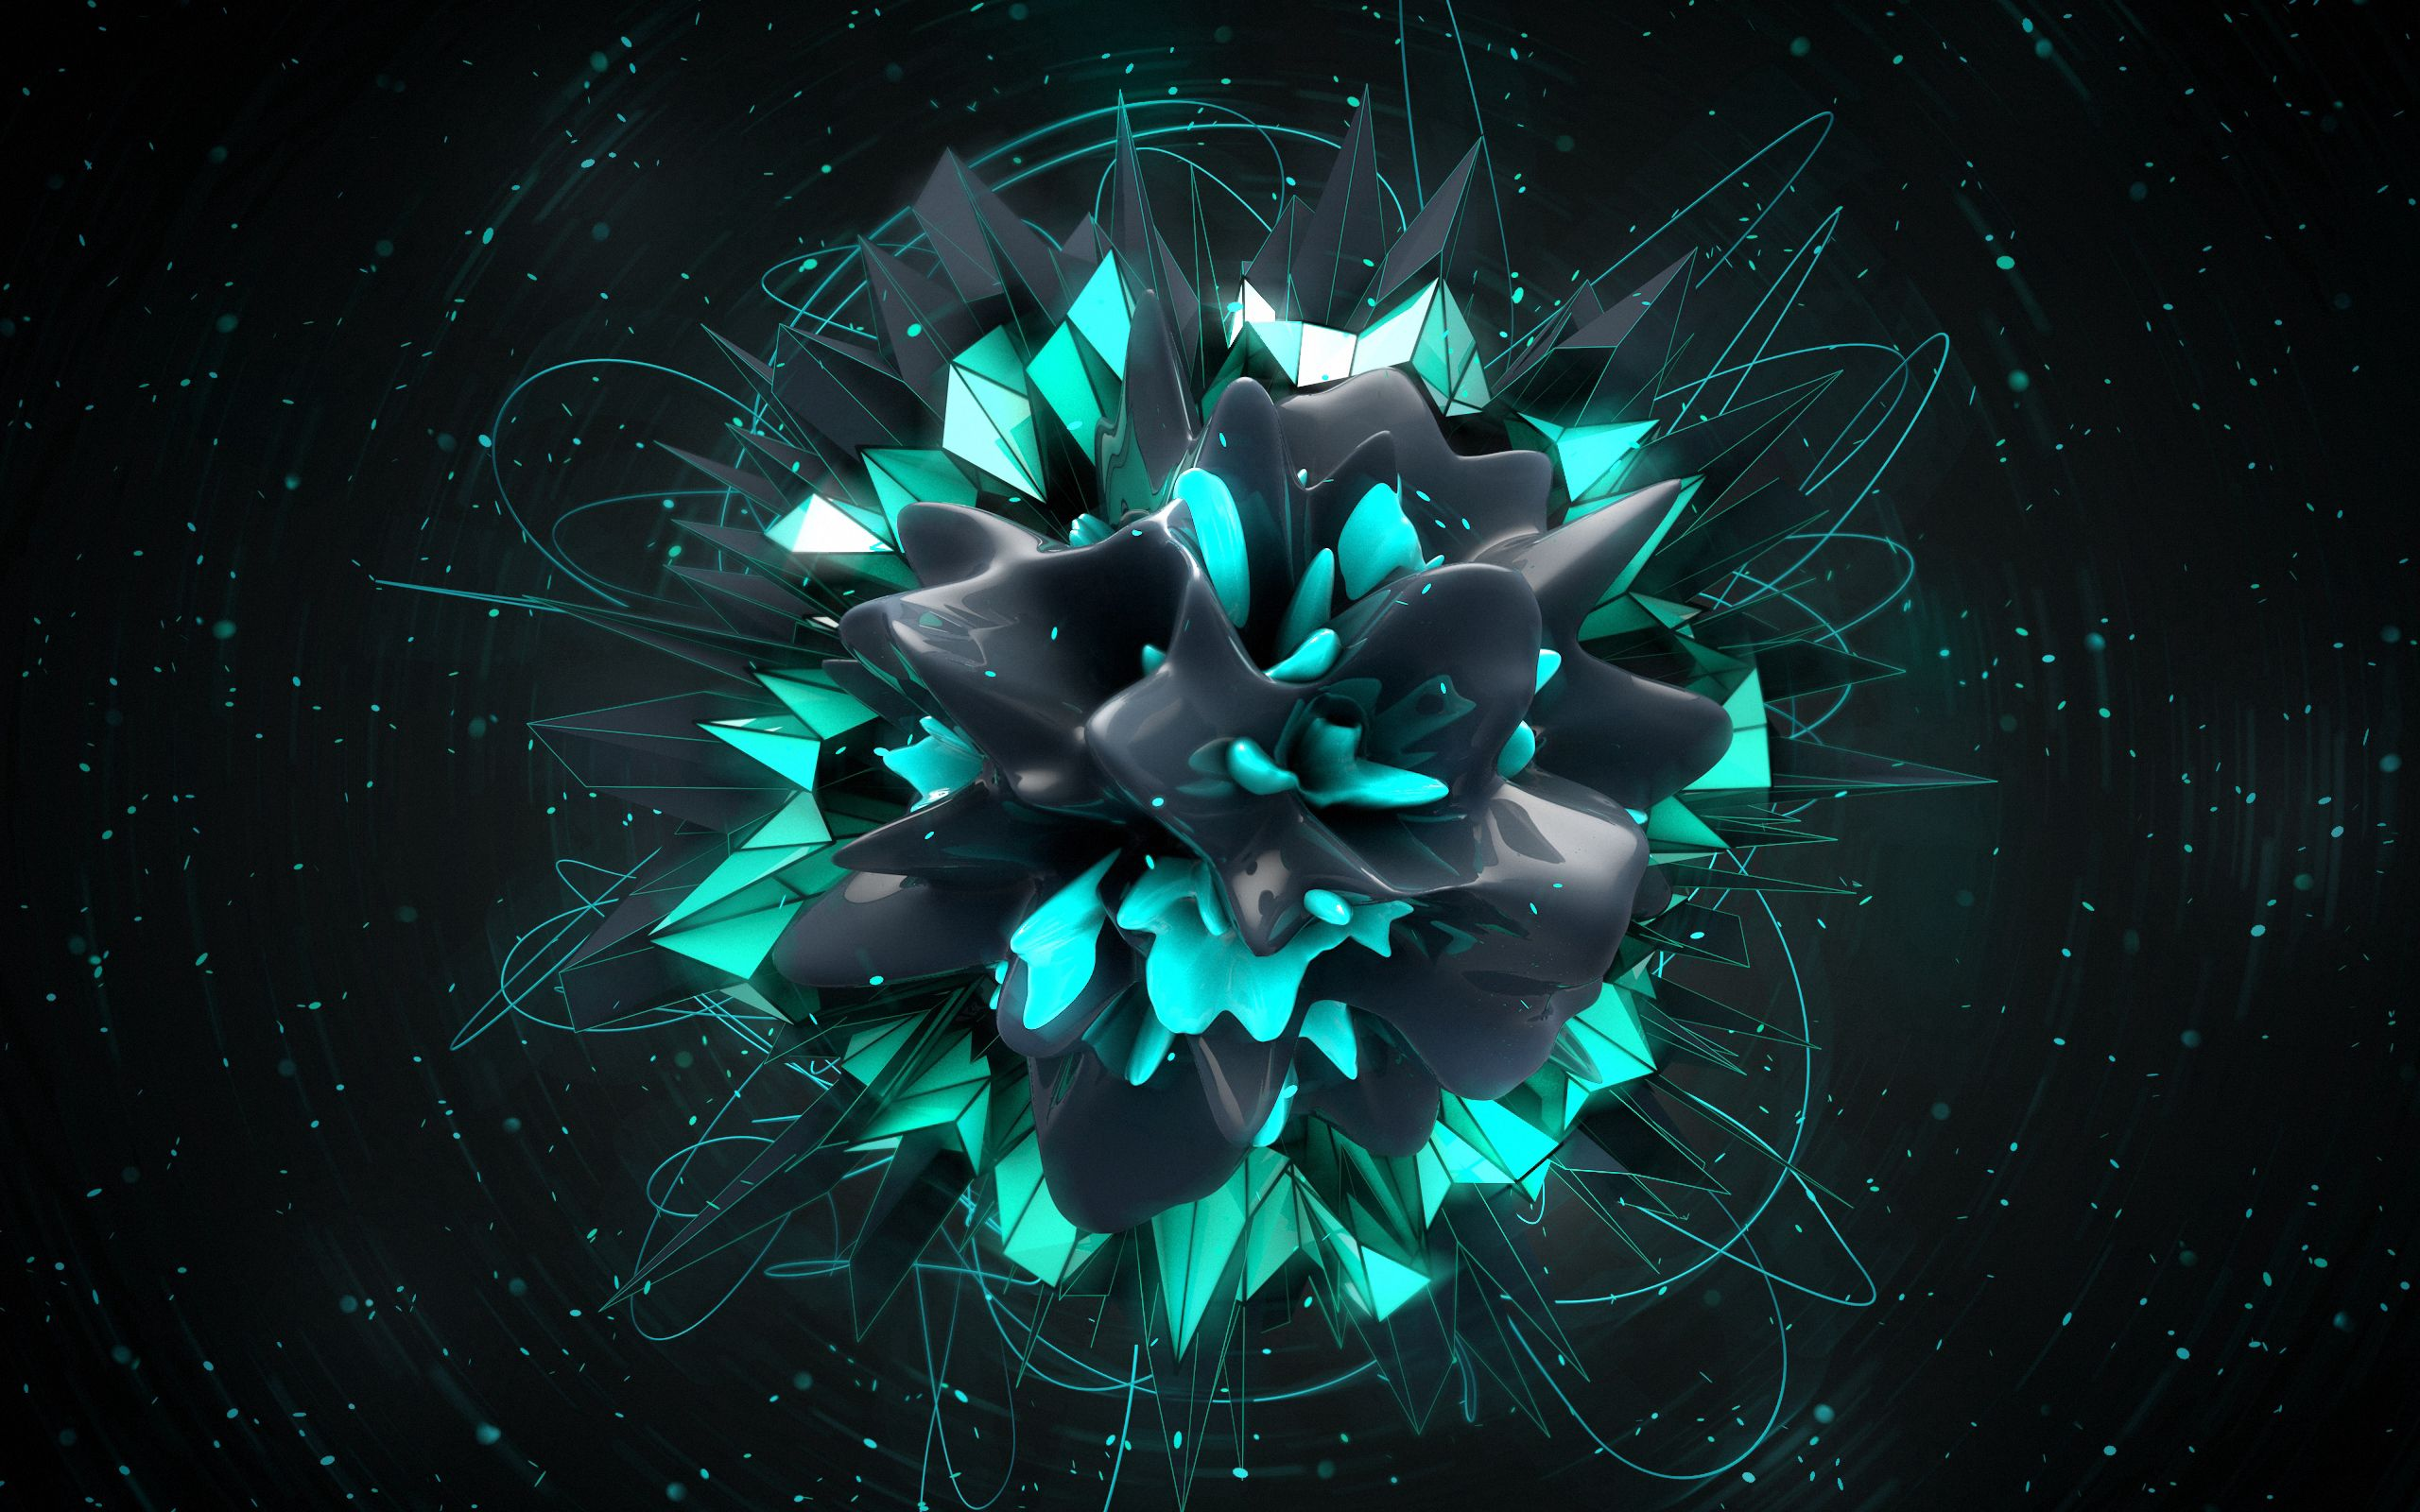 147576 download wallpaper Abstract, Form, Dark, Explosion screensavers and pictures for free